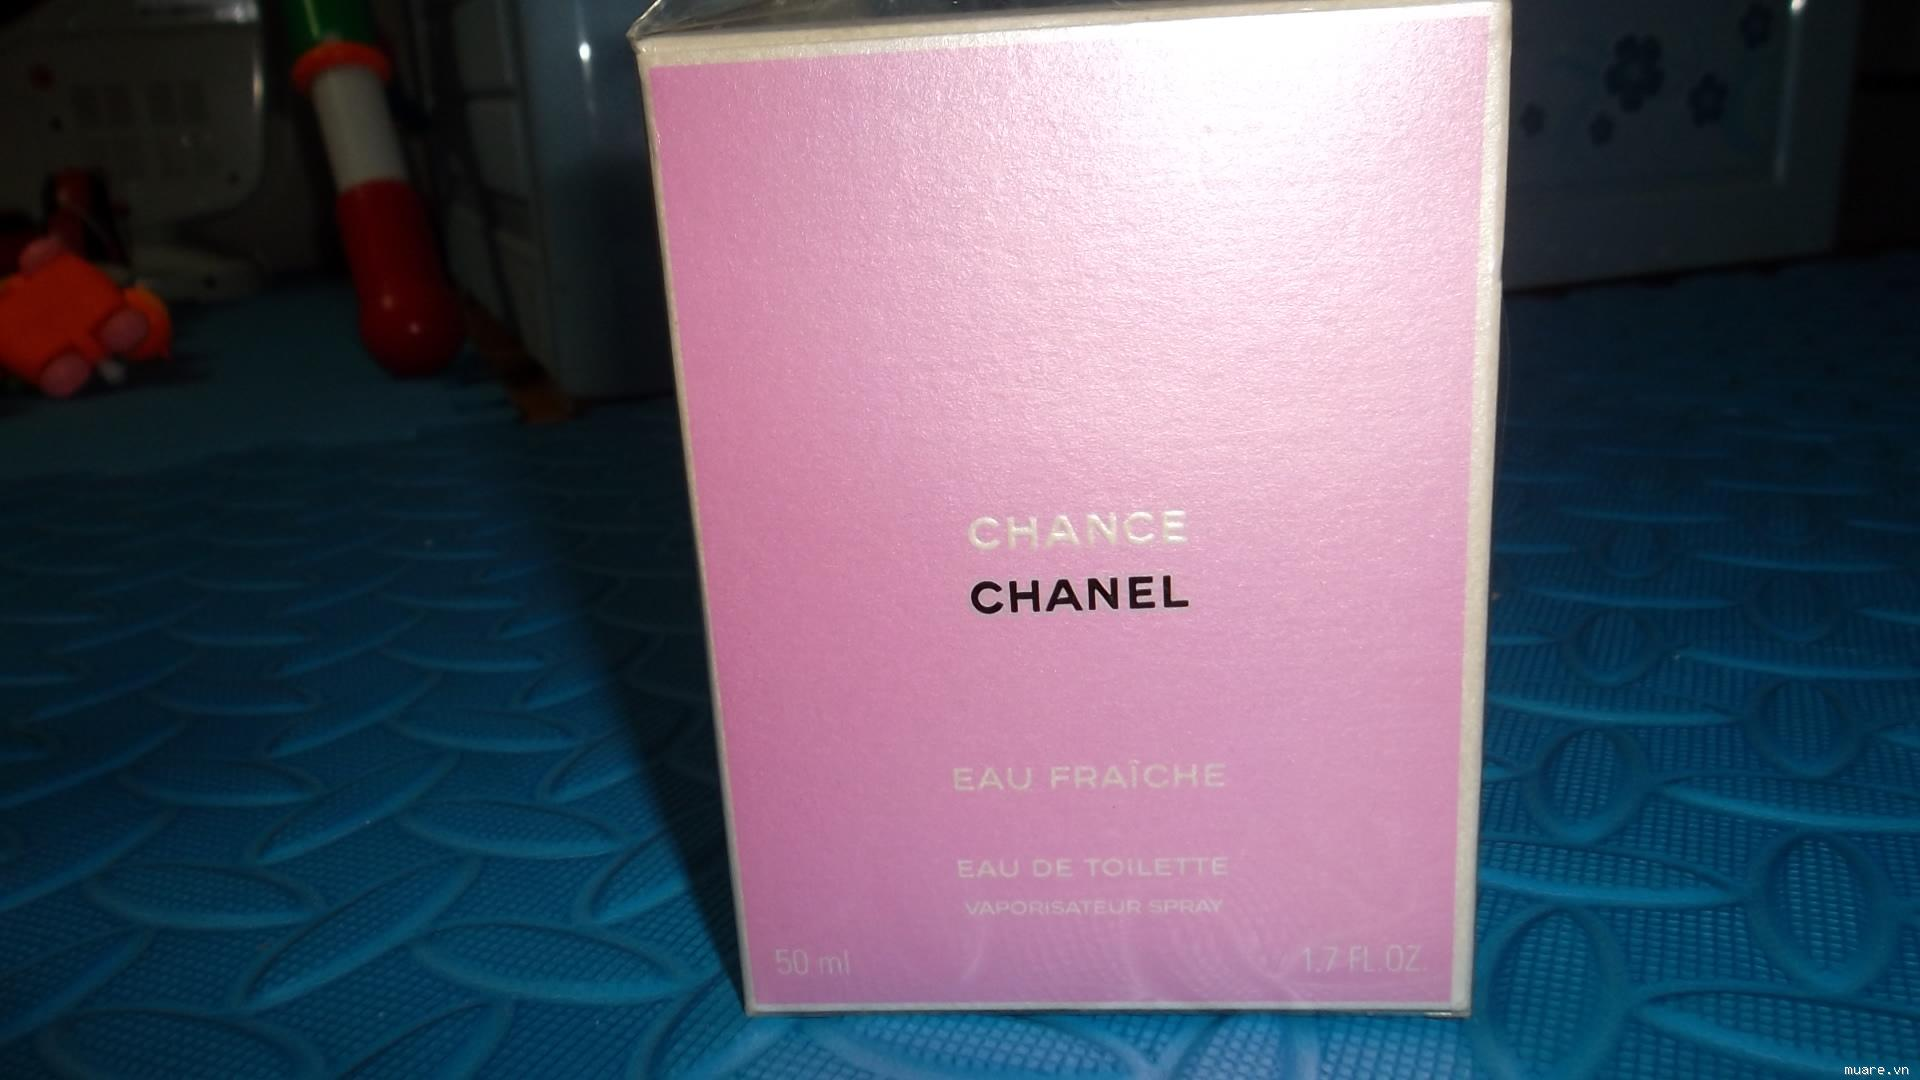 Thanh ly nuoc hoa skincare Chanel Gucci Burberry MaxFactor hang auth